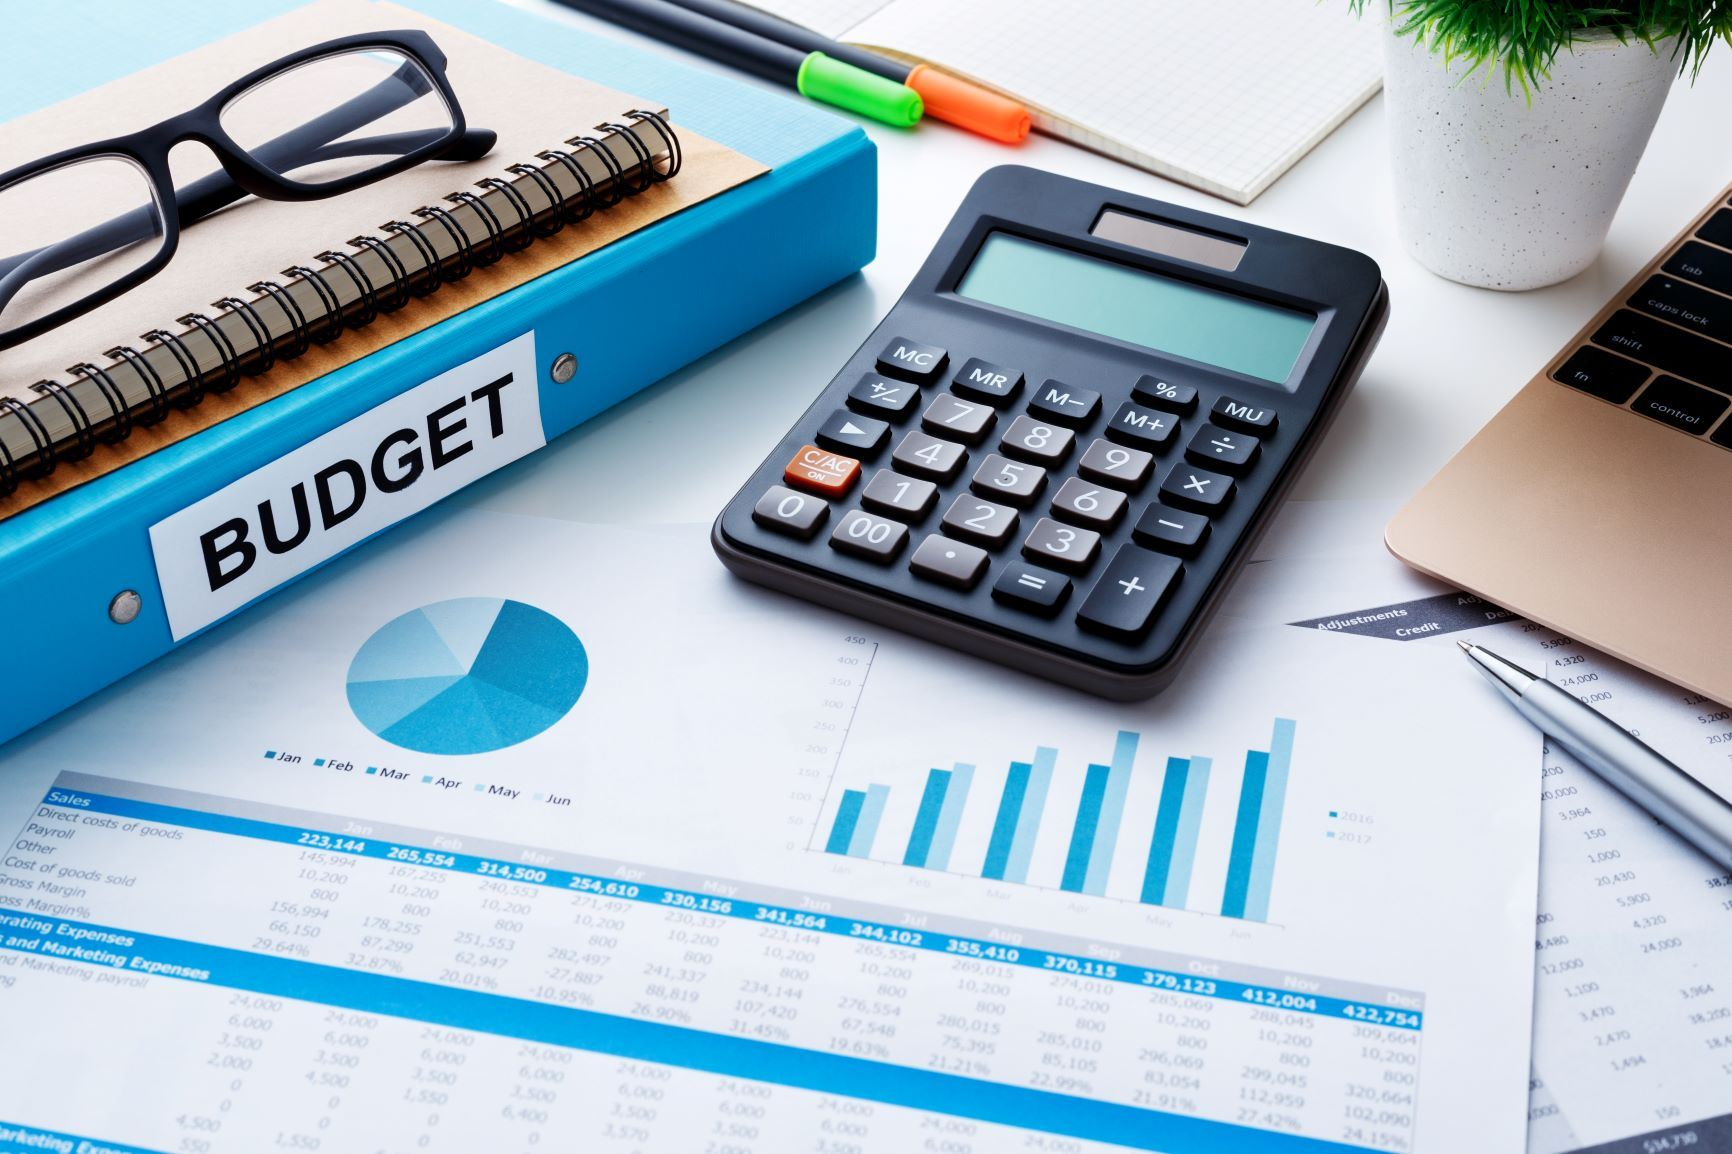 budget binder calculator and bar graphs